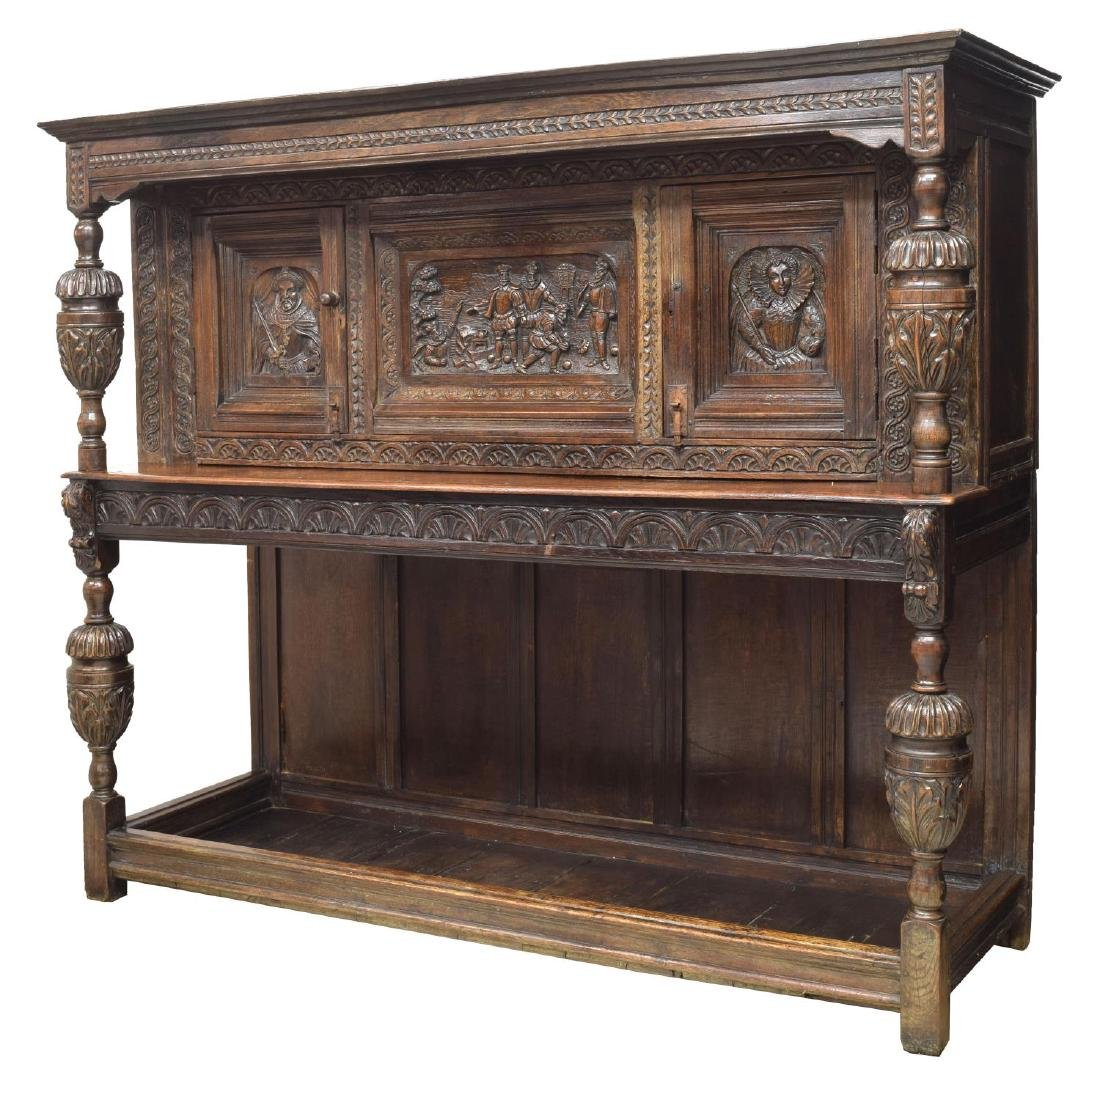 ENGLISH HEAVILY CARVED OAK COURT SIDEBOARD